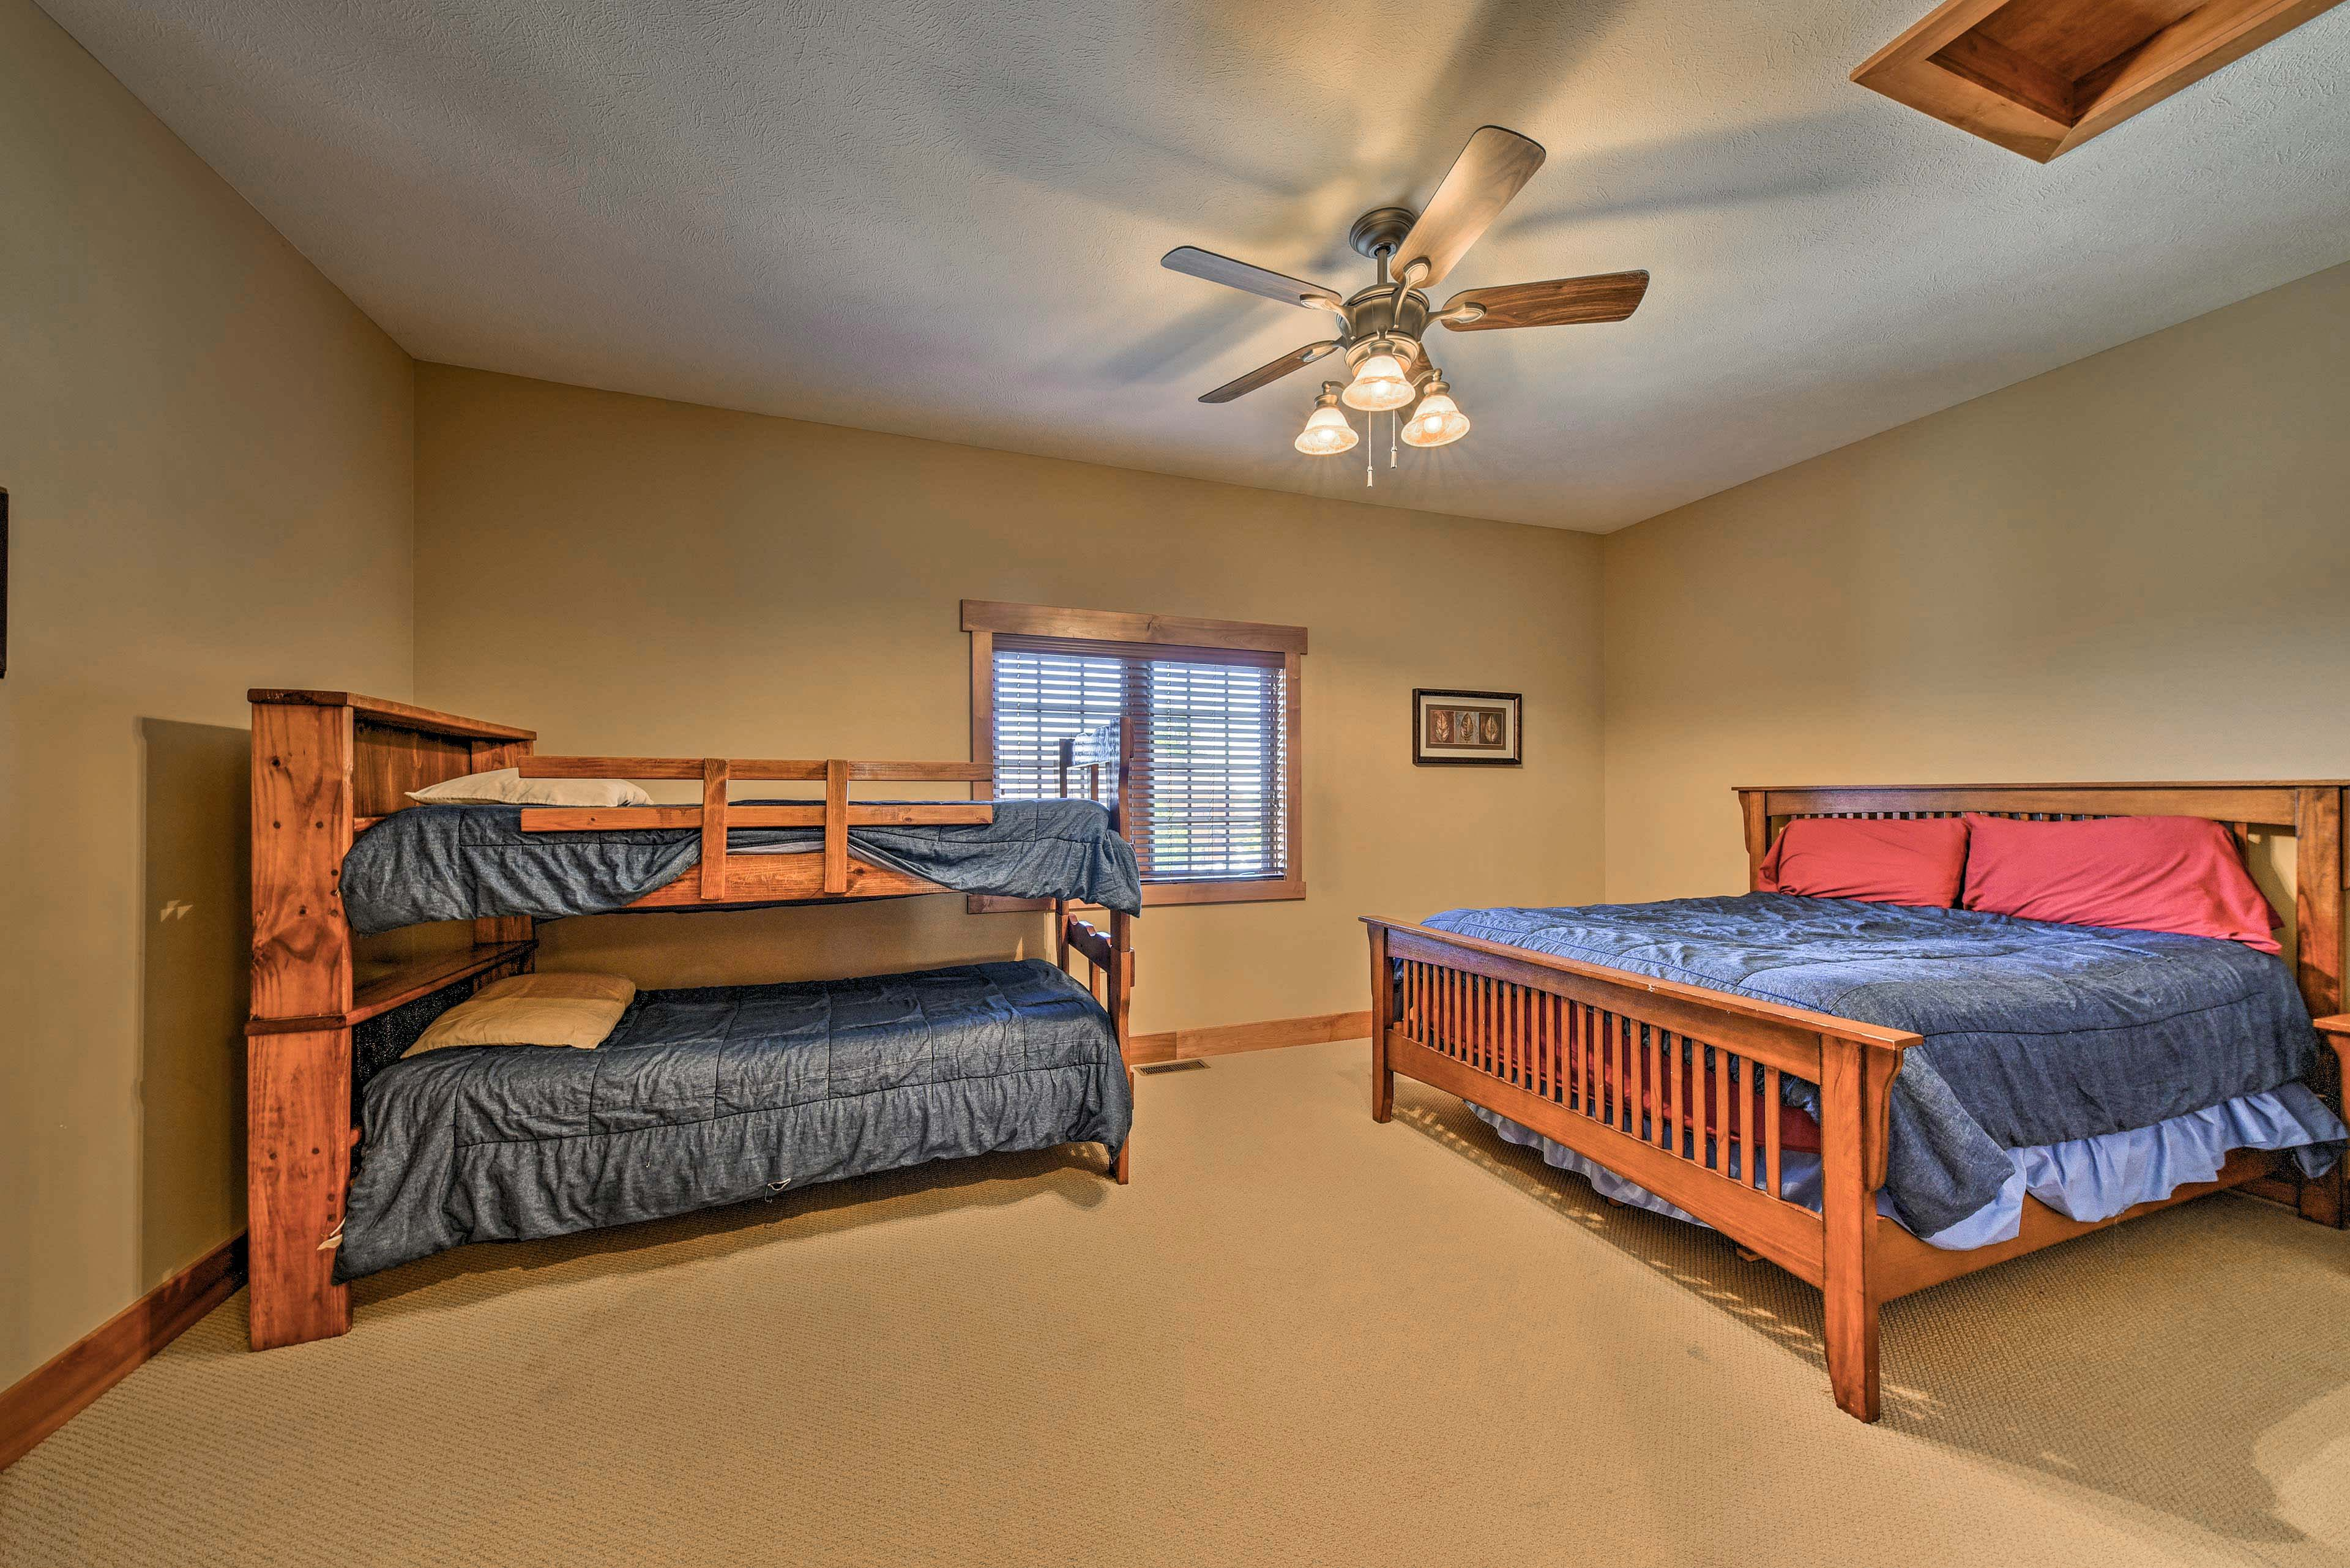 Sleep 4 in this bedroom, complete with a twin-over-twin bunk bed.